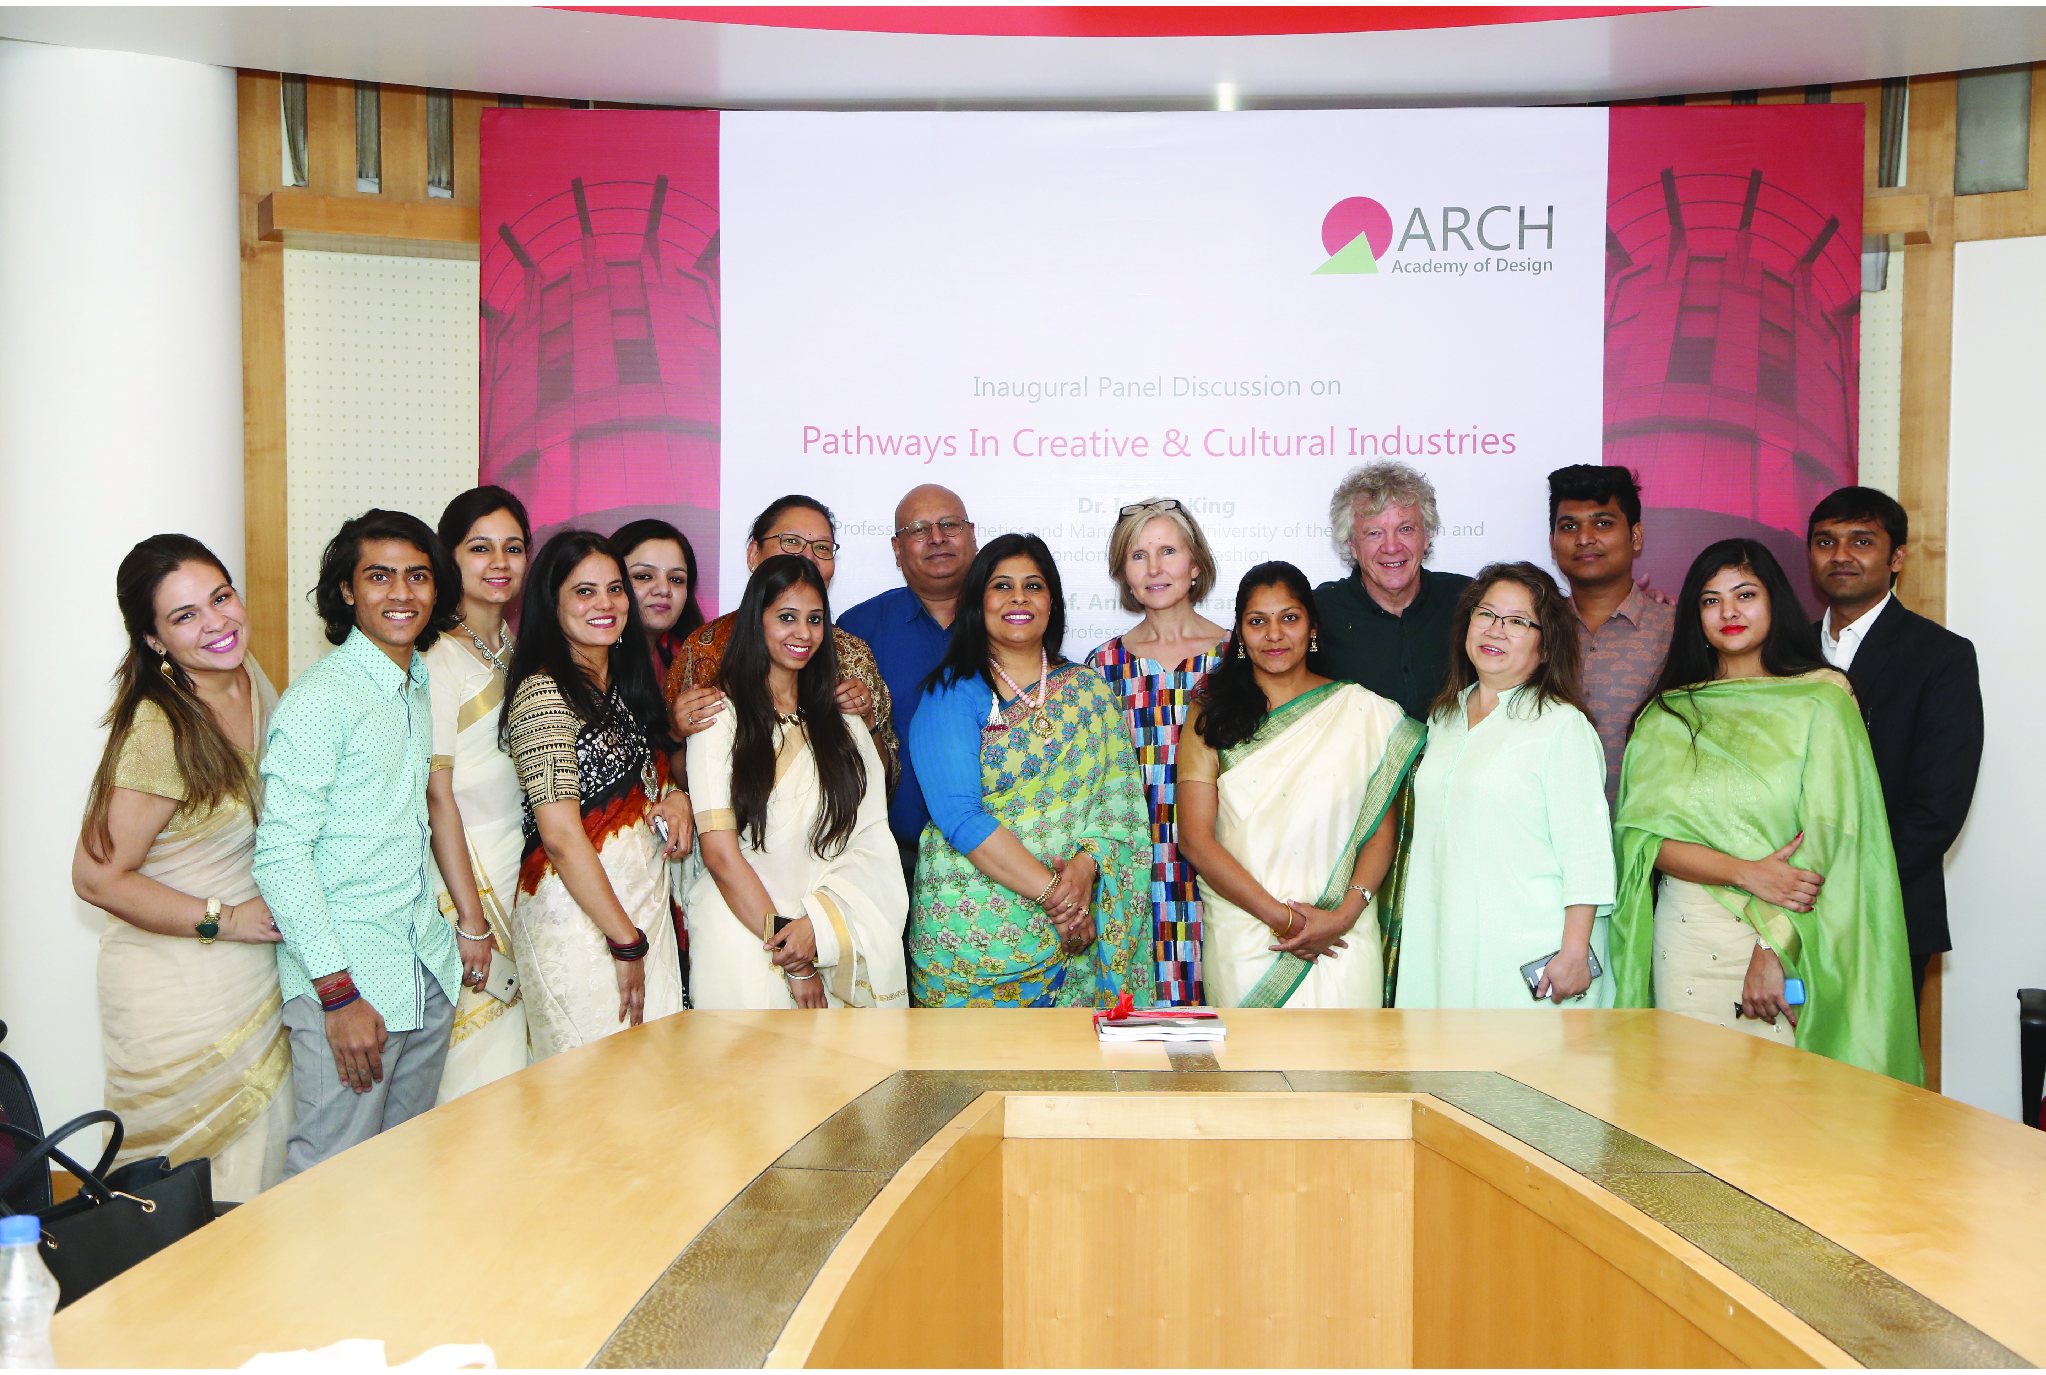 ARCH TO OPEN ITS NEW CAMPUS IN TECH CITY- GURGAON